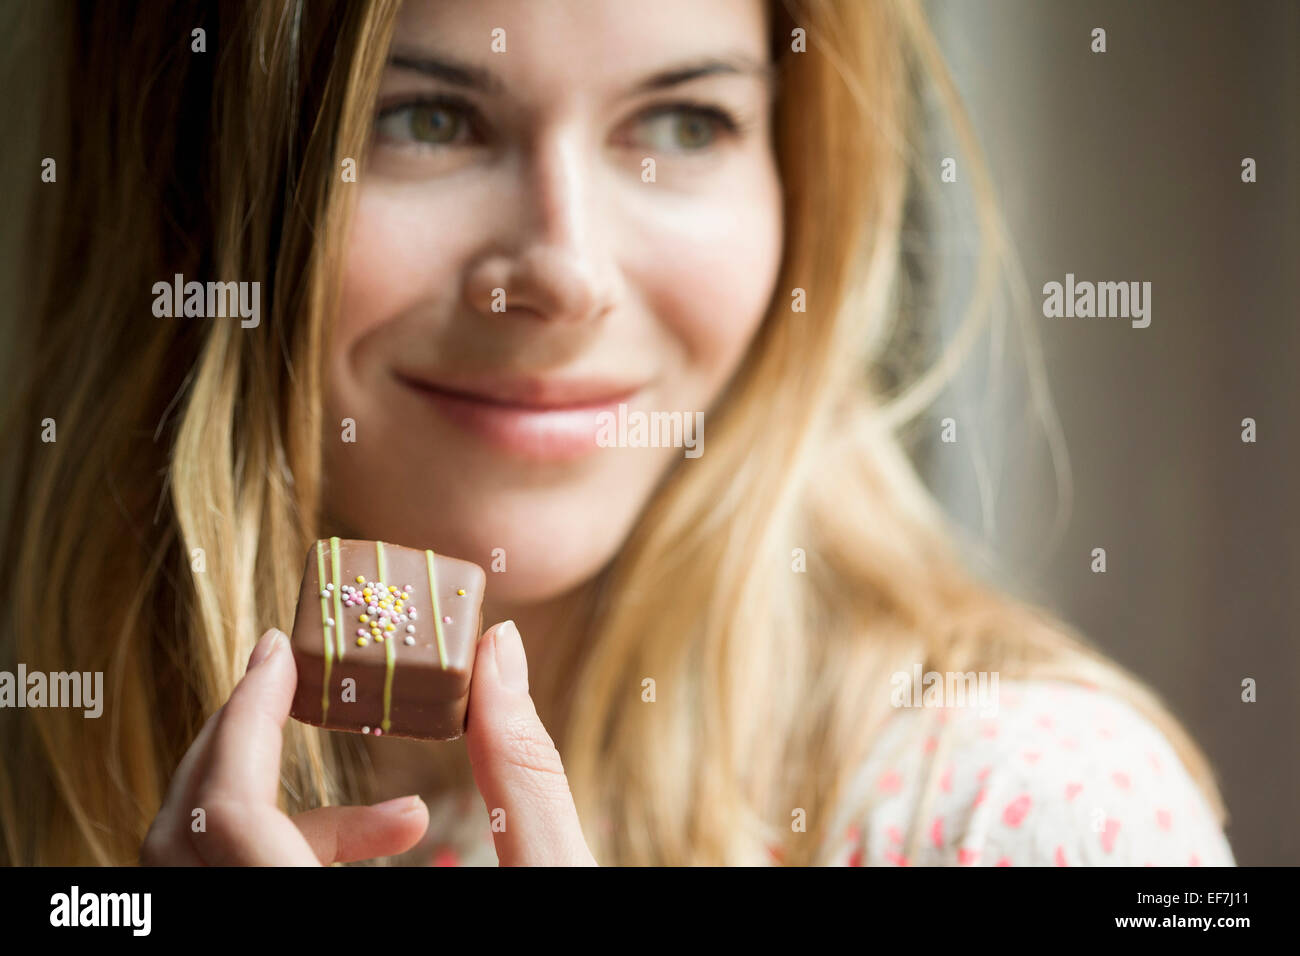 Woman eating a chocolate - Stock Image